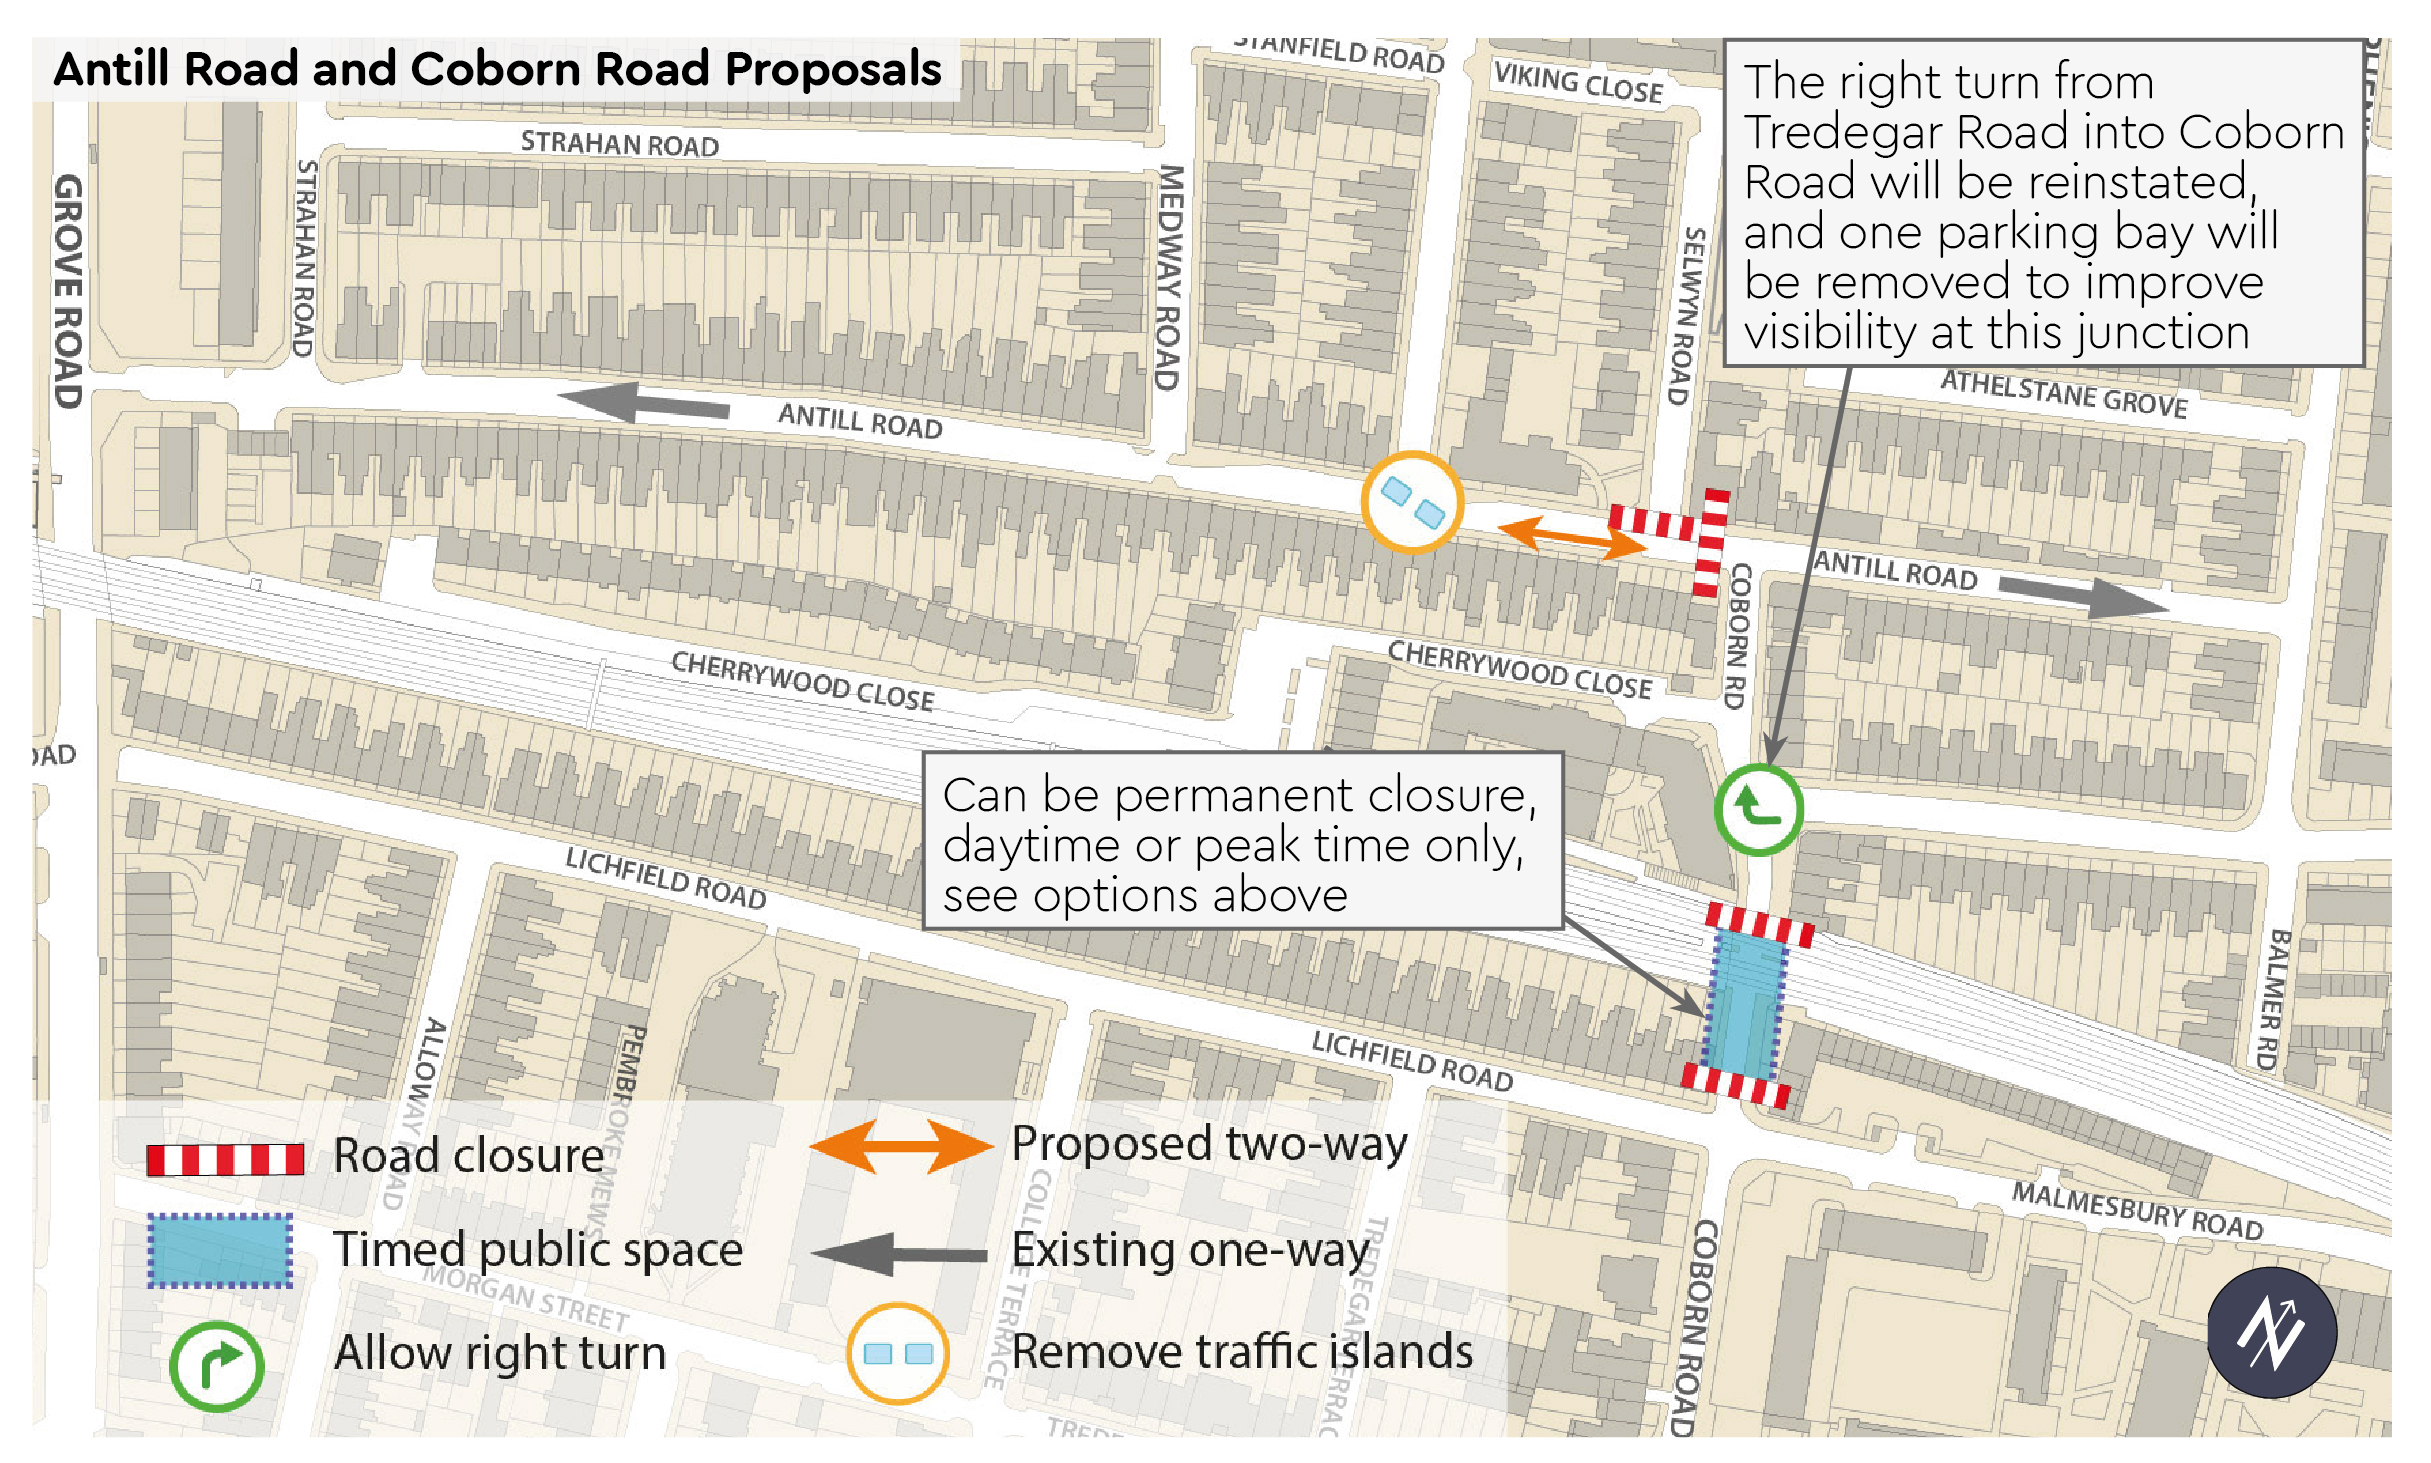 Antill Road and Coborn Road Proposals - Permanent, day-time or peak time closure options on Coborn Road underpass - Right turn from Tredegar Road into Coborn Road